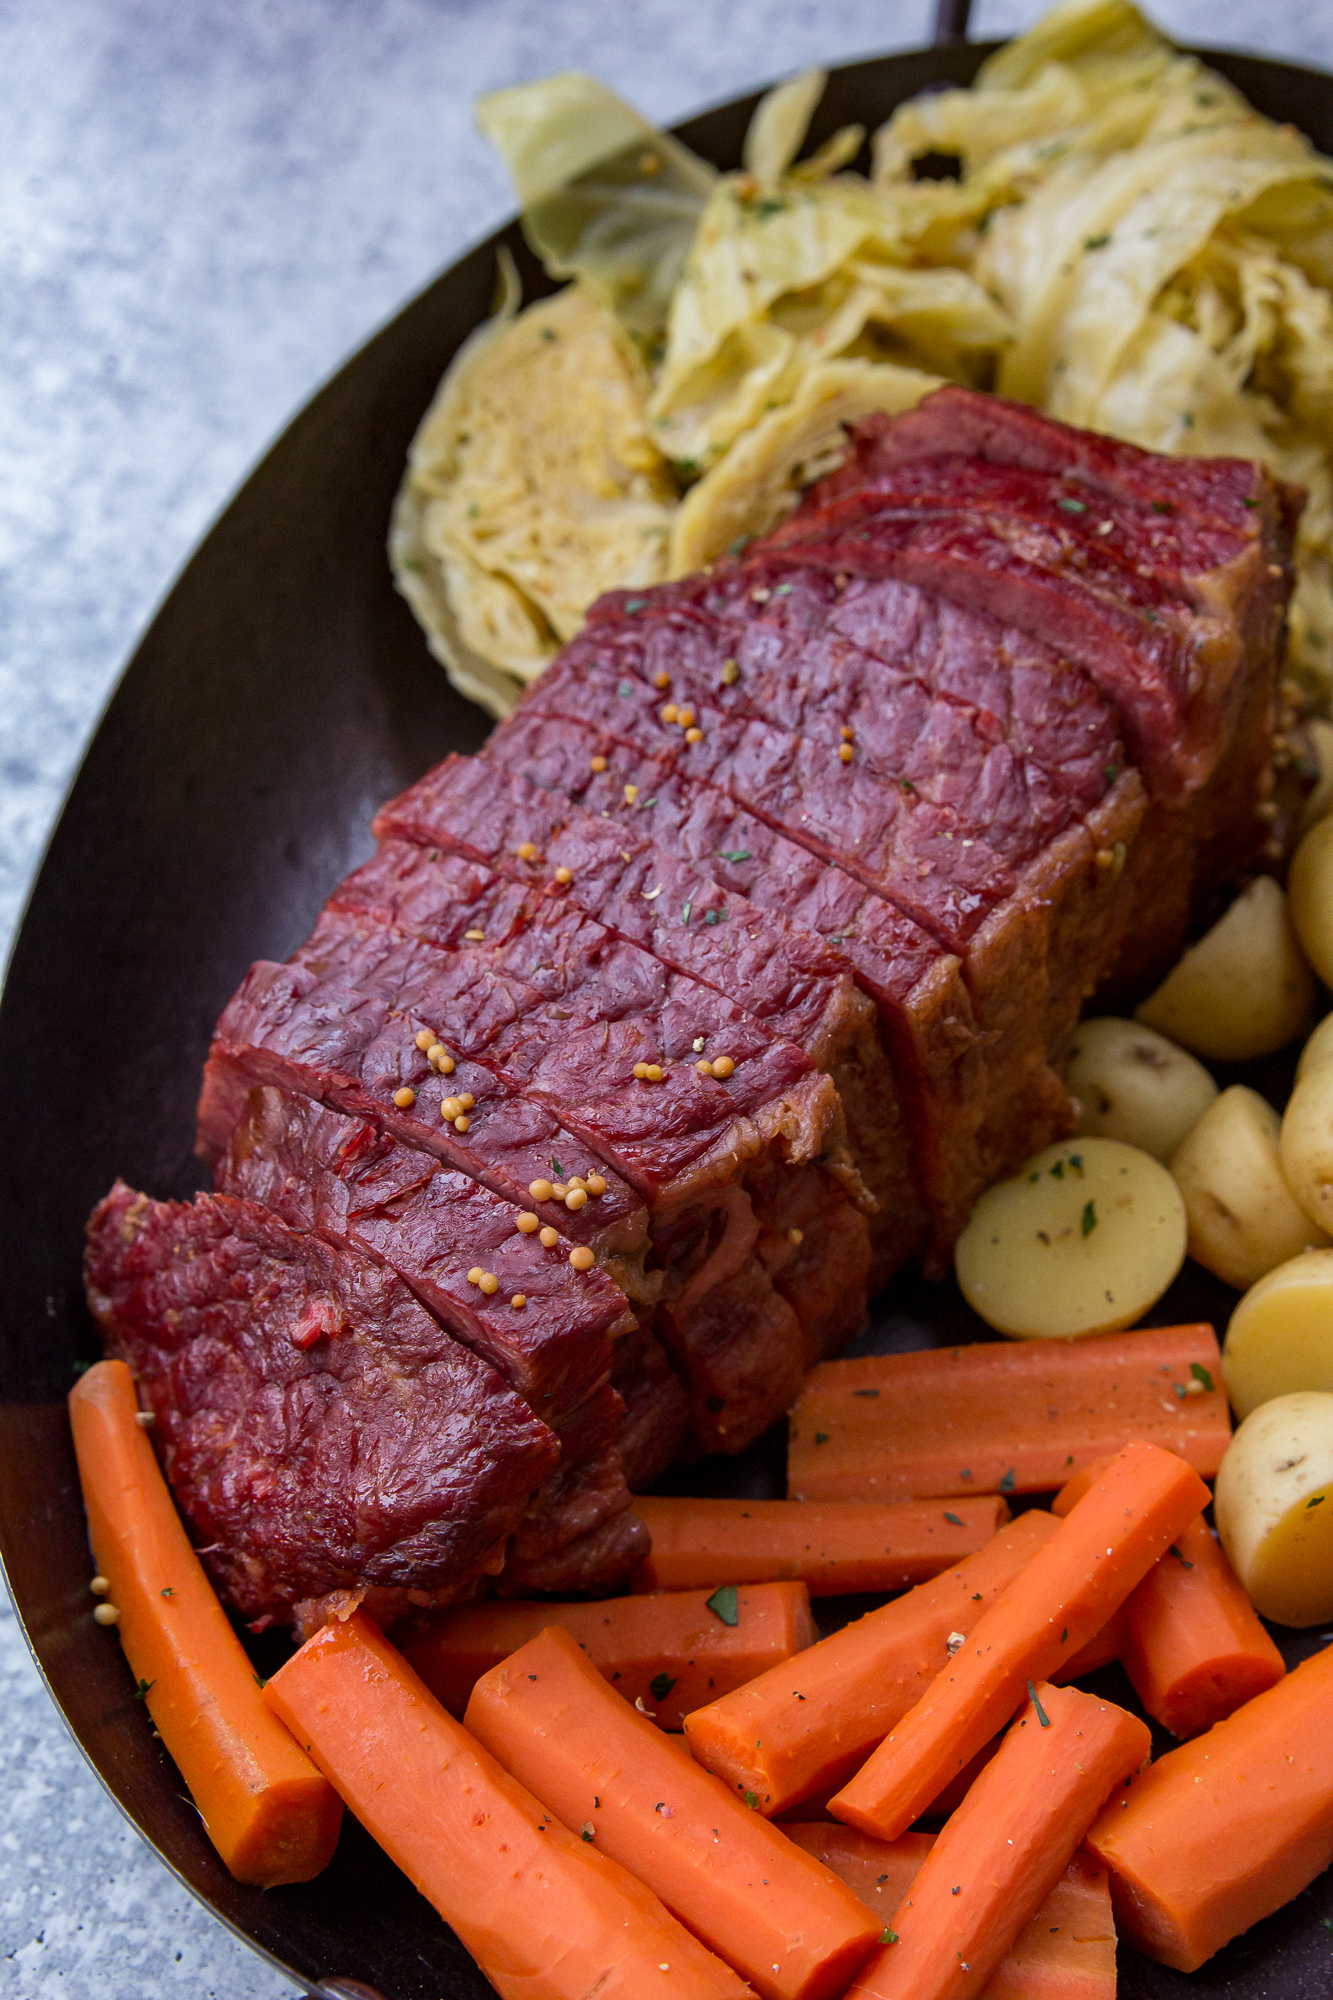 Traeger Smoked Corned Beef and Cabbage